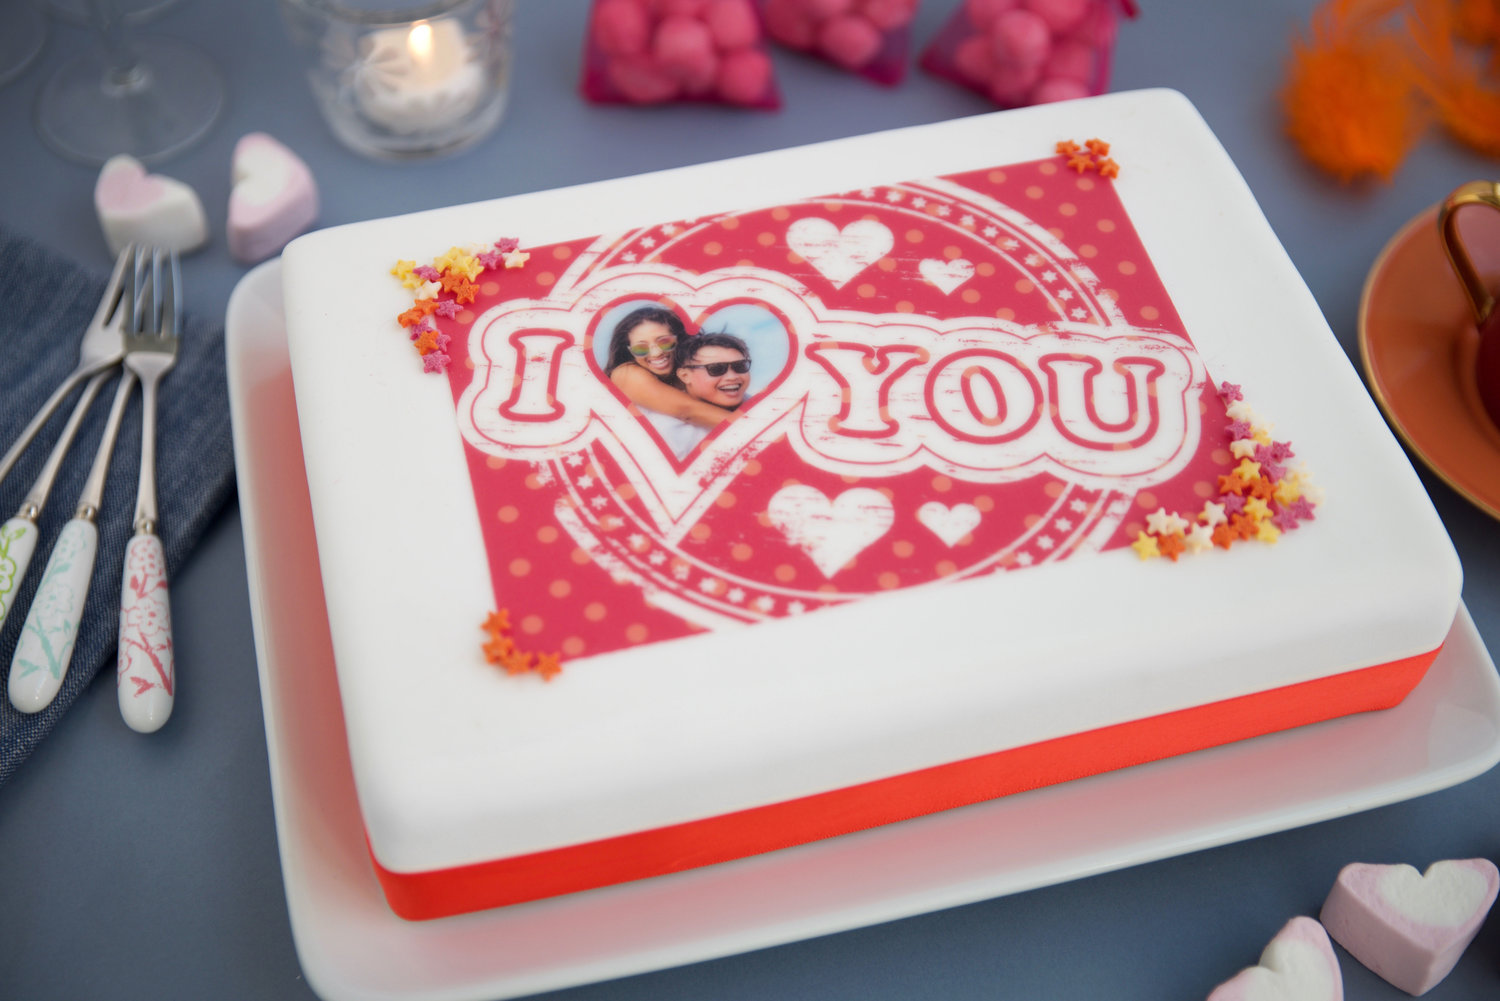 Print Your Beloveds Photo Onto A Cake At Asda And Morrisons For Valentines Day Yours